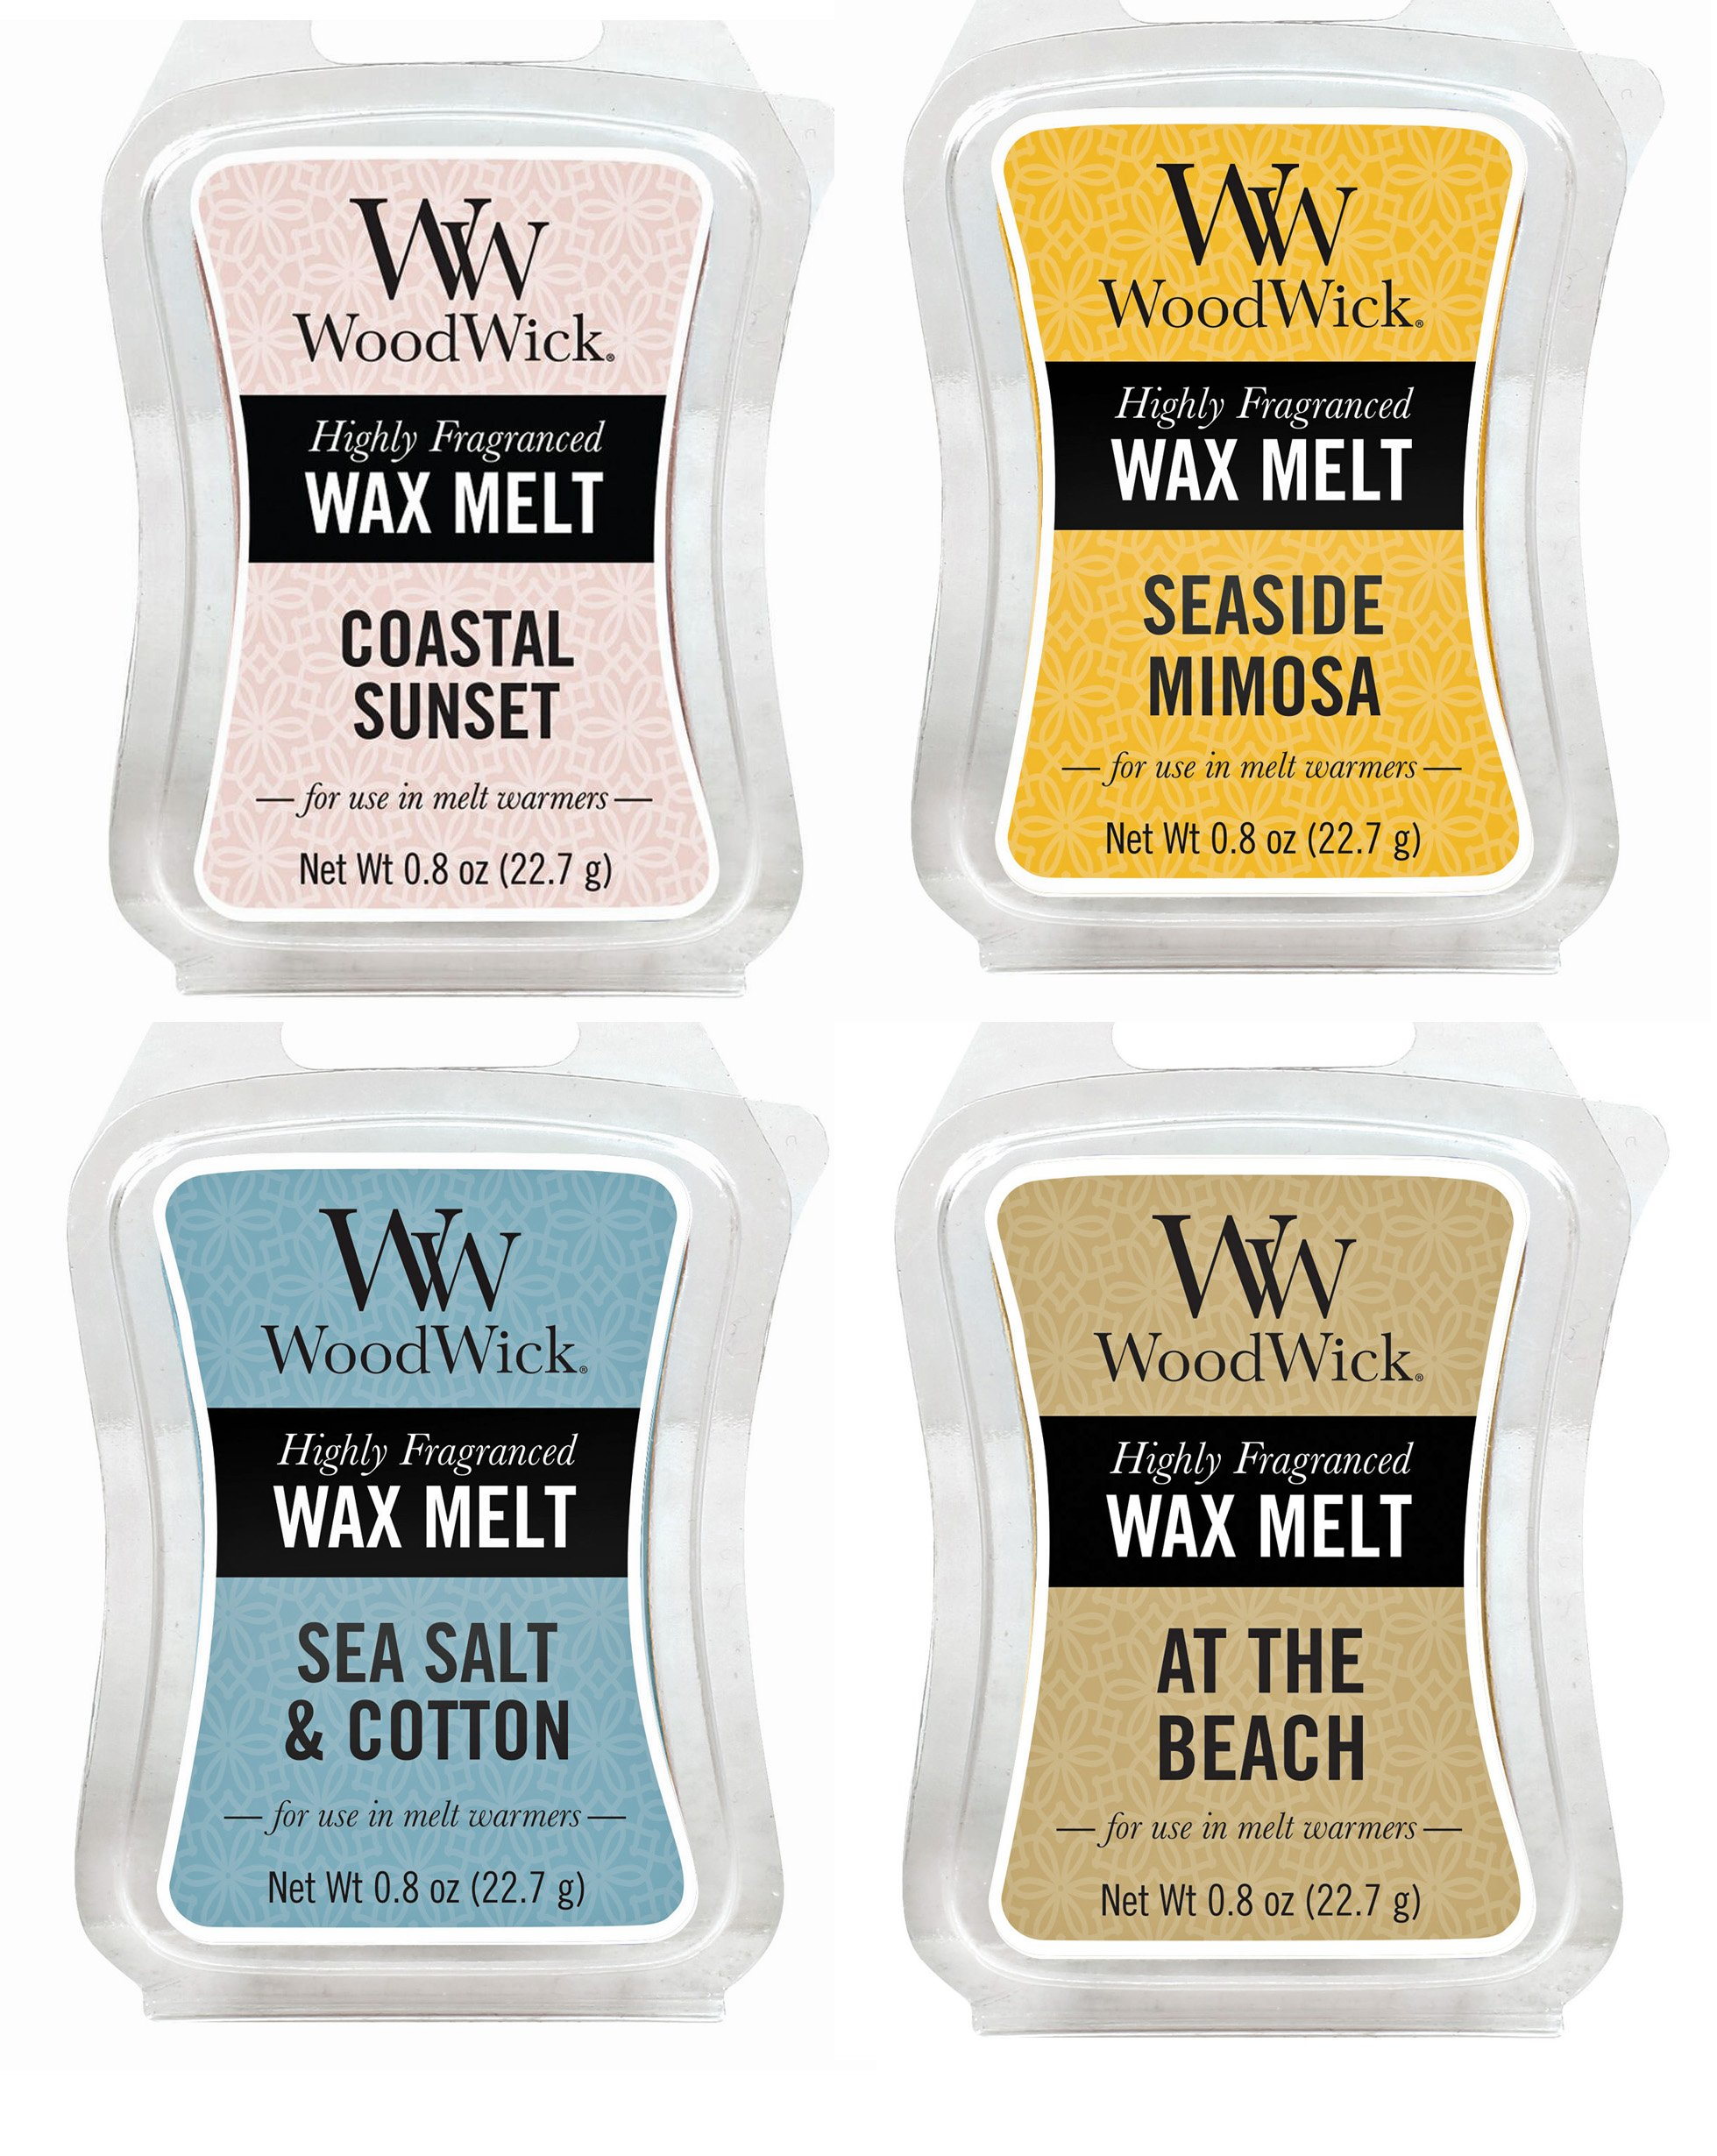 TROPICAL GETAWAY Bundle - 4 Items: At The Beach, Coastal Sunset, Sea Salt & Cotton, and Seaside Mimosa WoodWick .8oz Mini Wax Melts